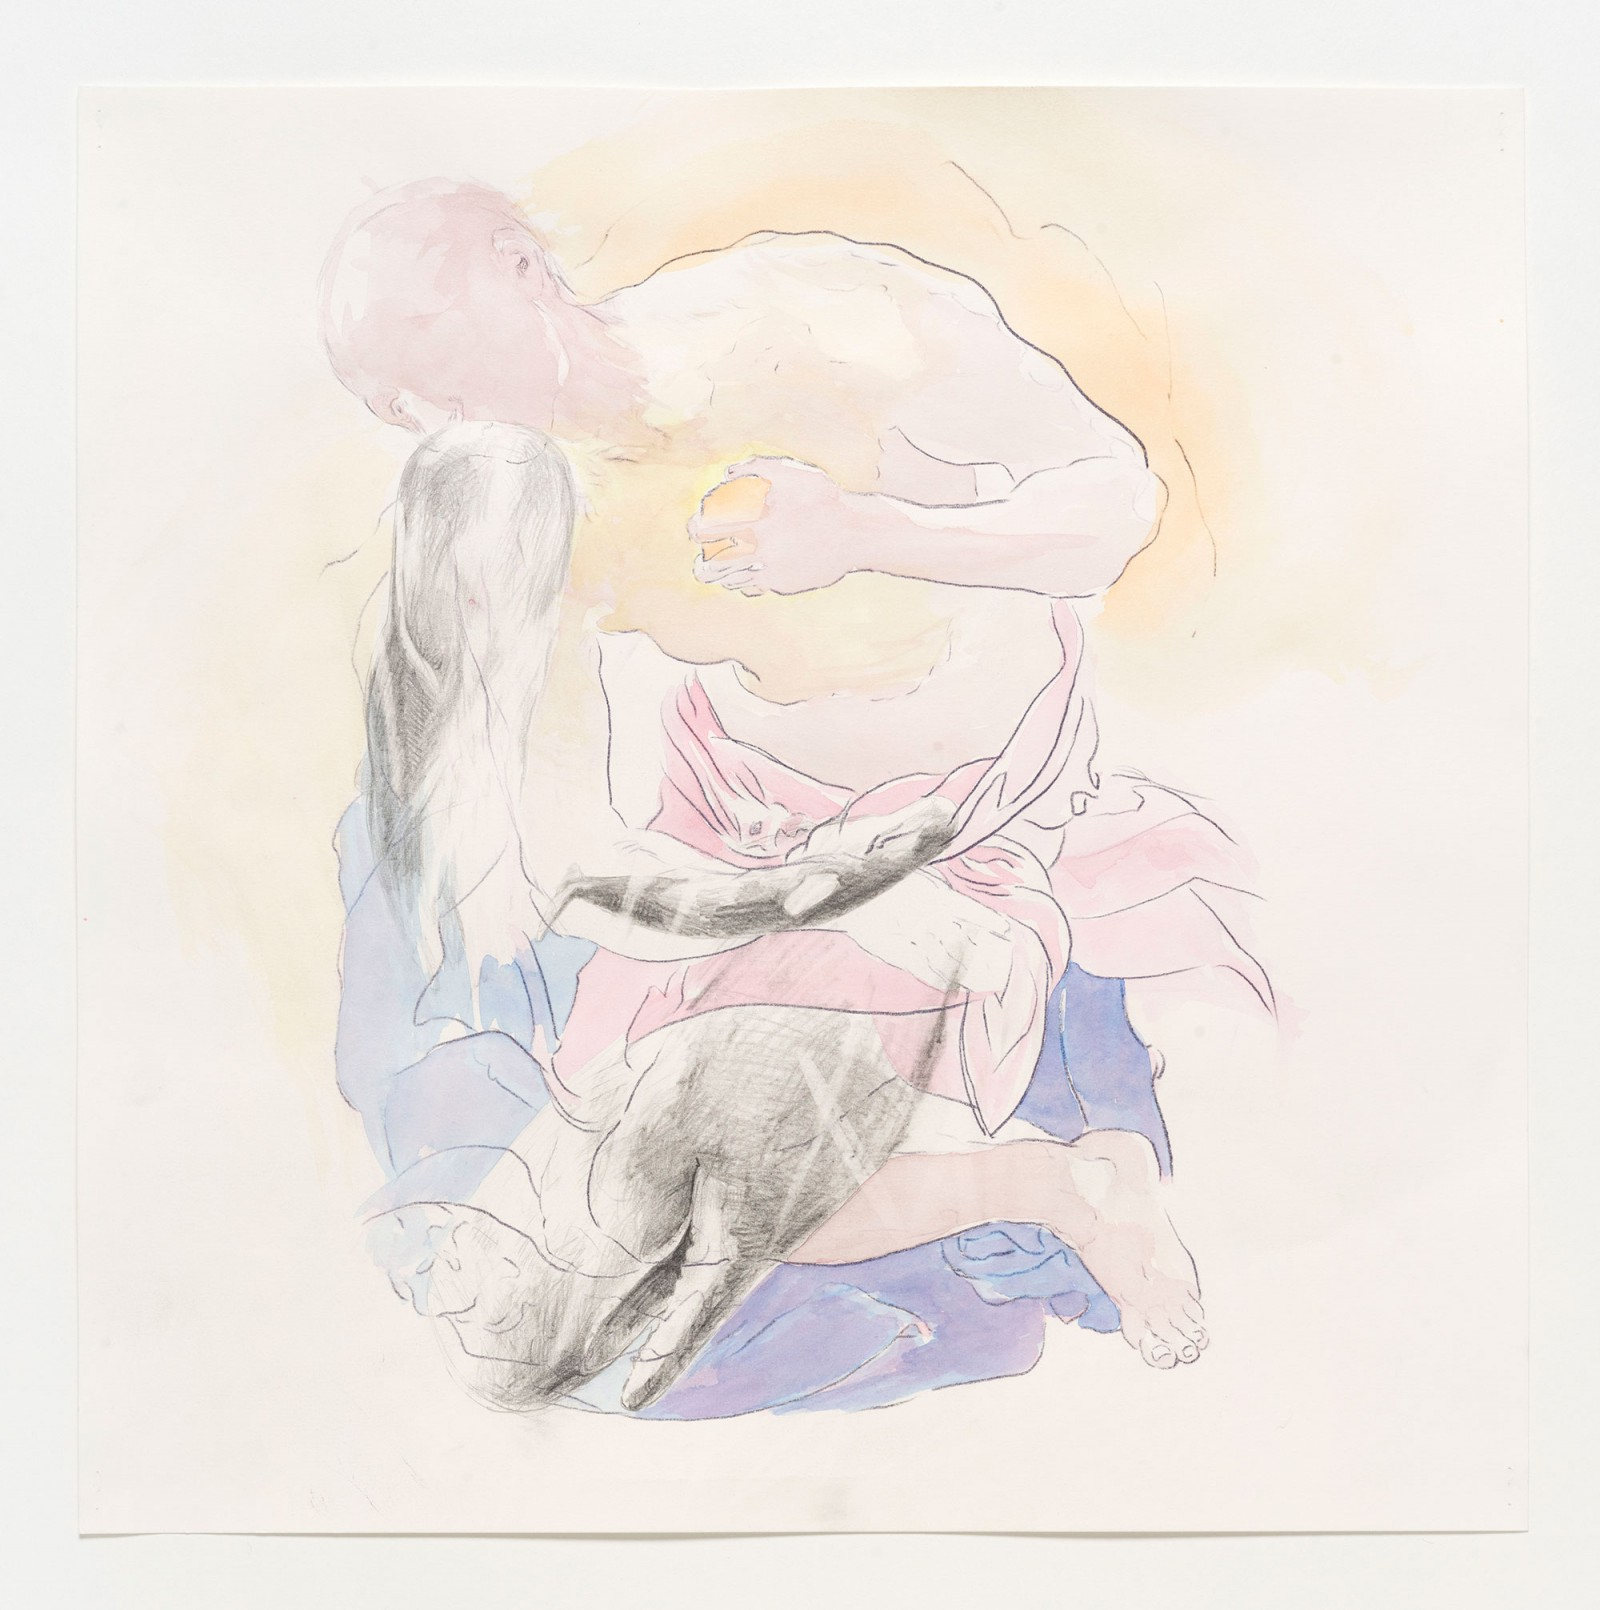 Kim Nekarda: untitled, 2019, carbon, pencil & watercolour on paper, 42 x 42 cm, private collection berlin